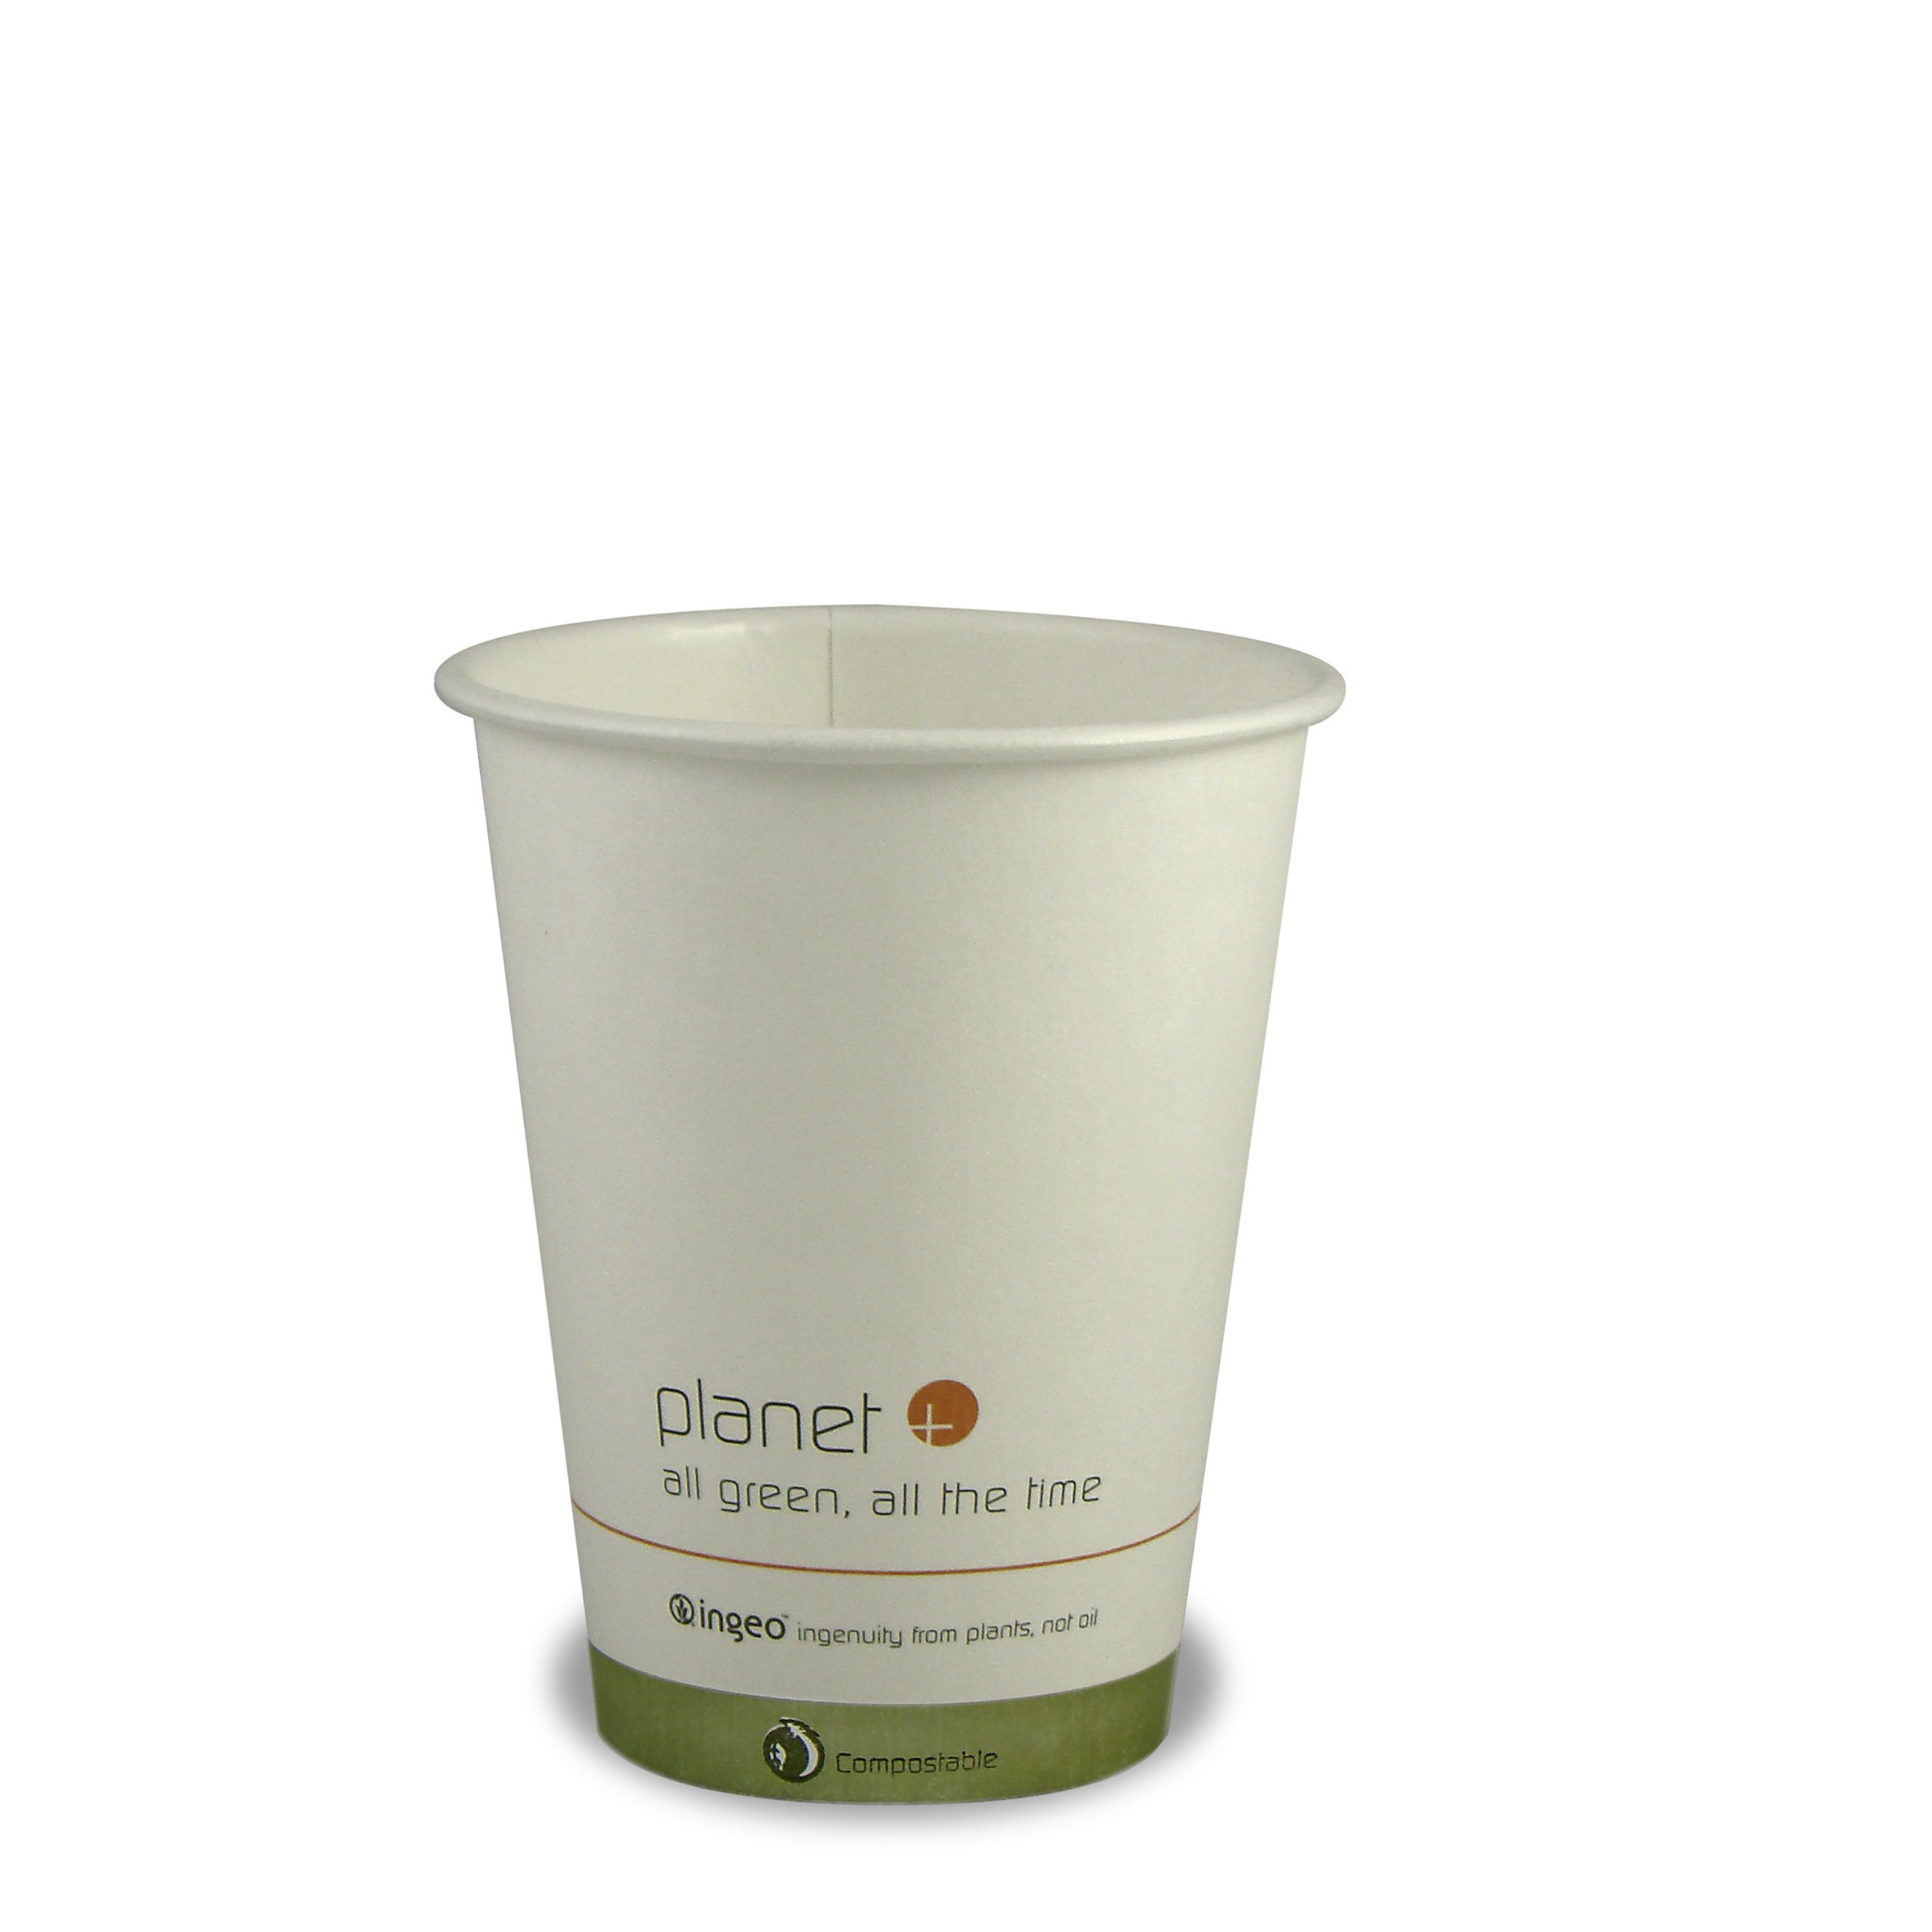 Planet + 100% Compostable PLA Laminated Hot Cup, 12-Ounce, 1000-Count Case by Stalkmarket